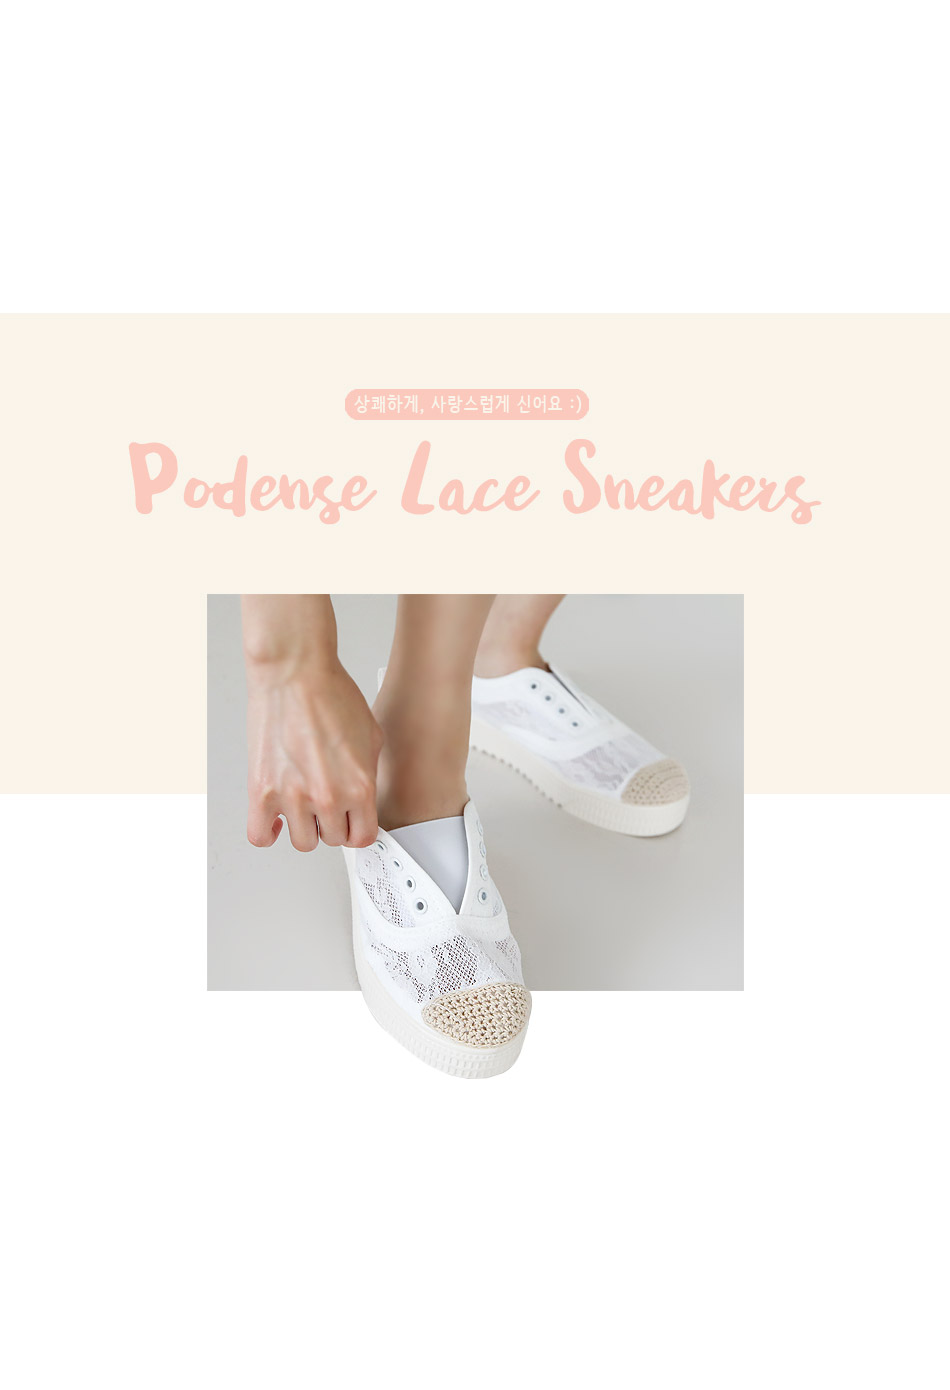 Podense Lace Sneakers 3cm